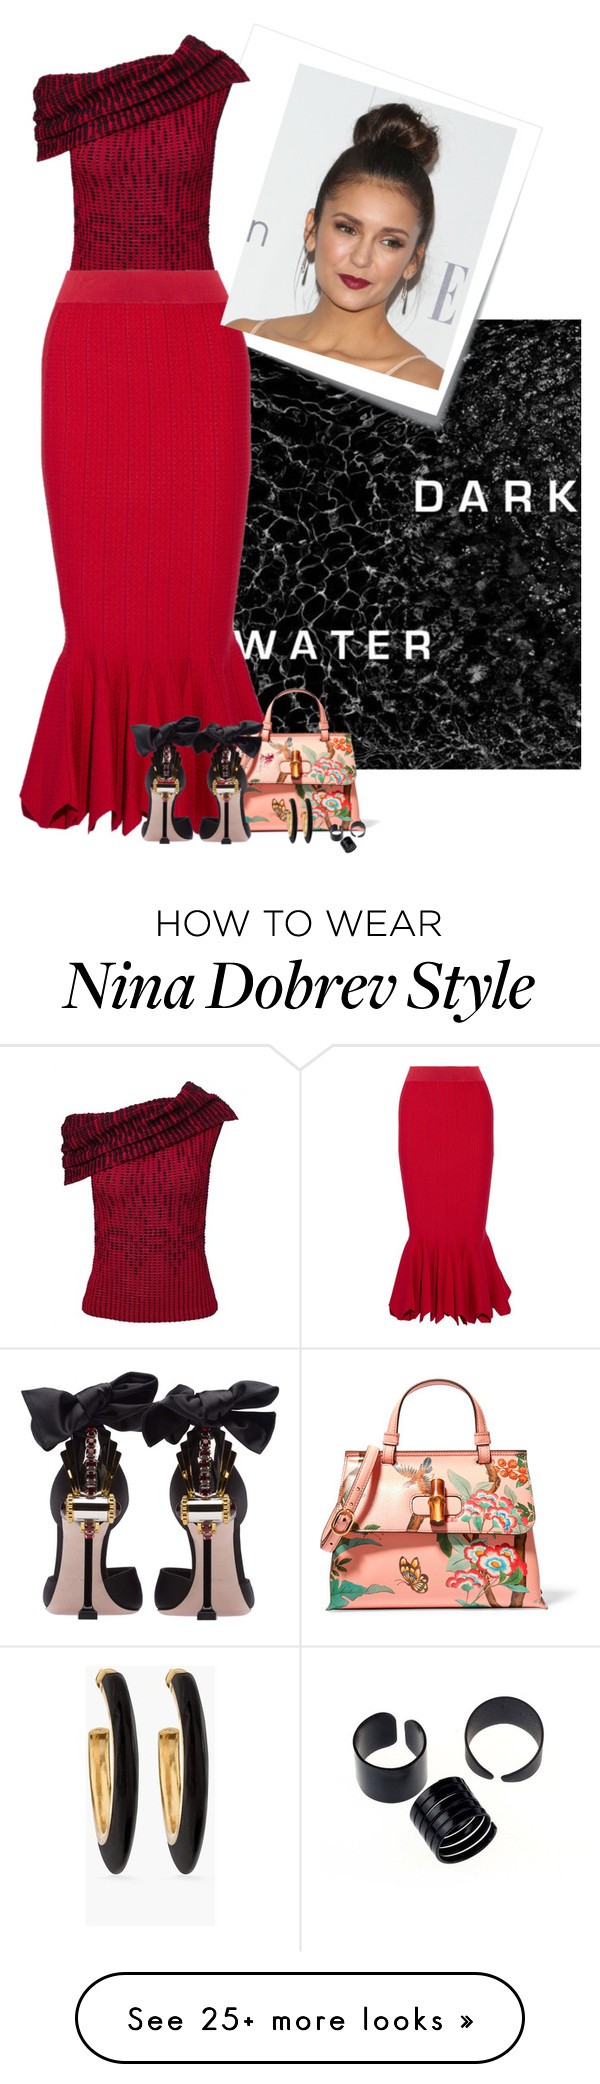 """""""Danielle"""" by herzblut1 on Polyvore featuring Post-It, Roland Mouret, Jonathan Simkhai, Gucci, Miu Miu and Chico's"""